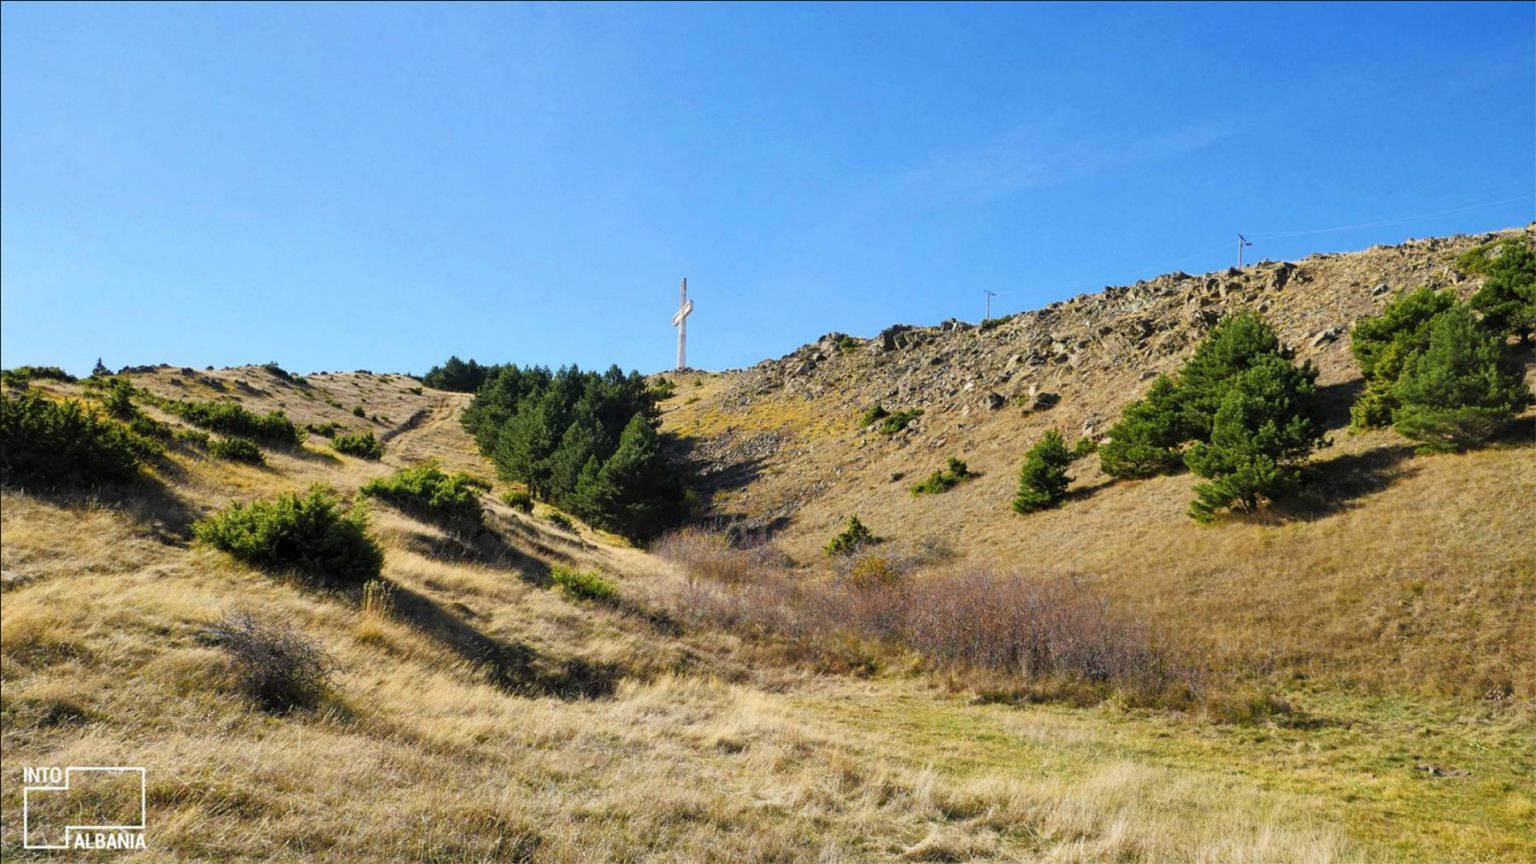 Morava Mountain, Korça, photo by IntoAlbania